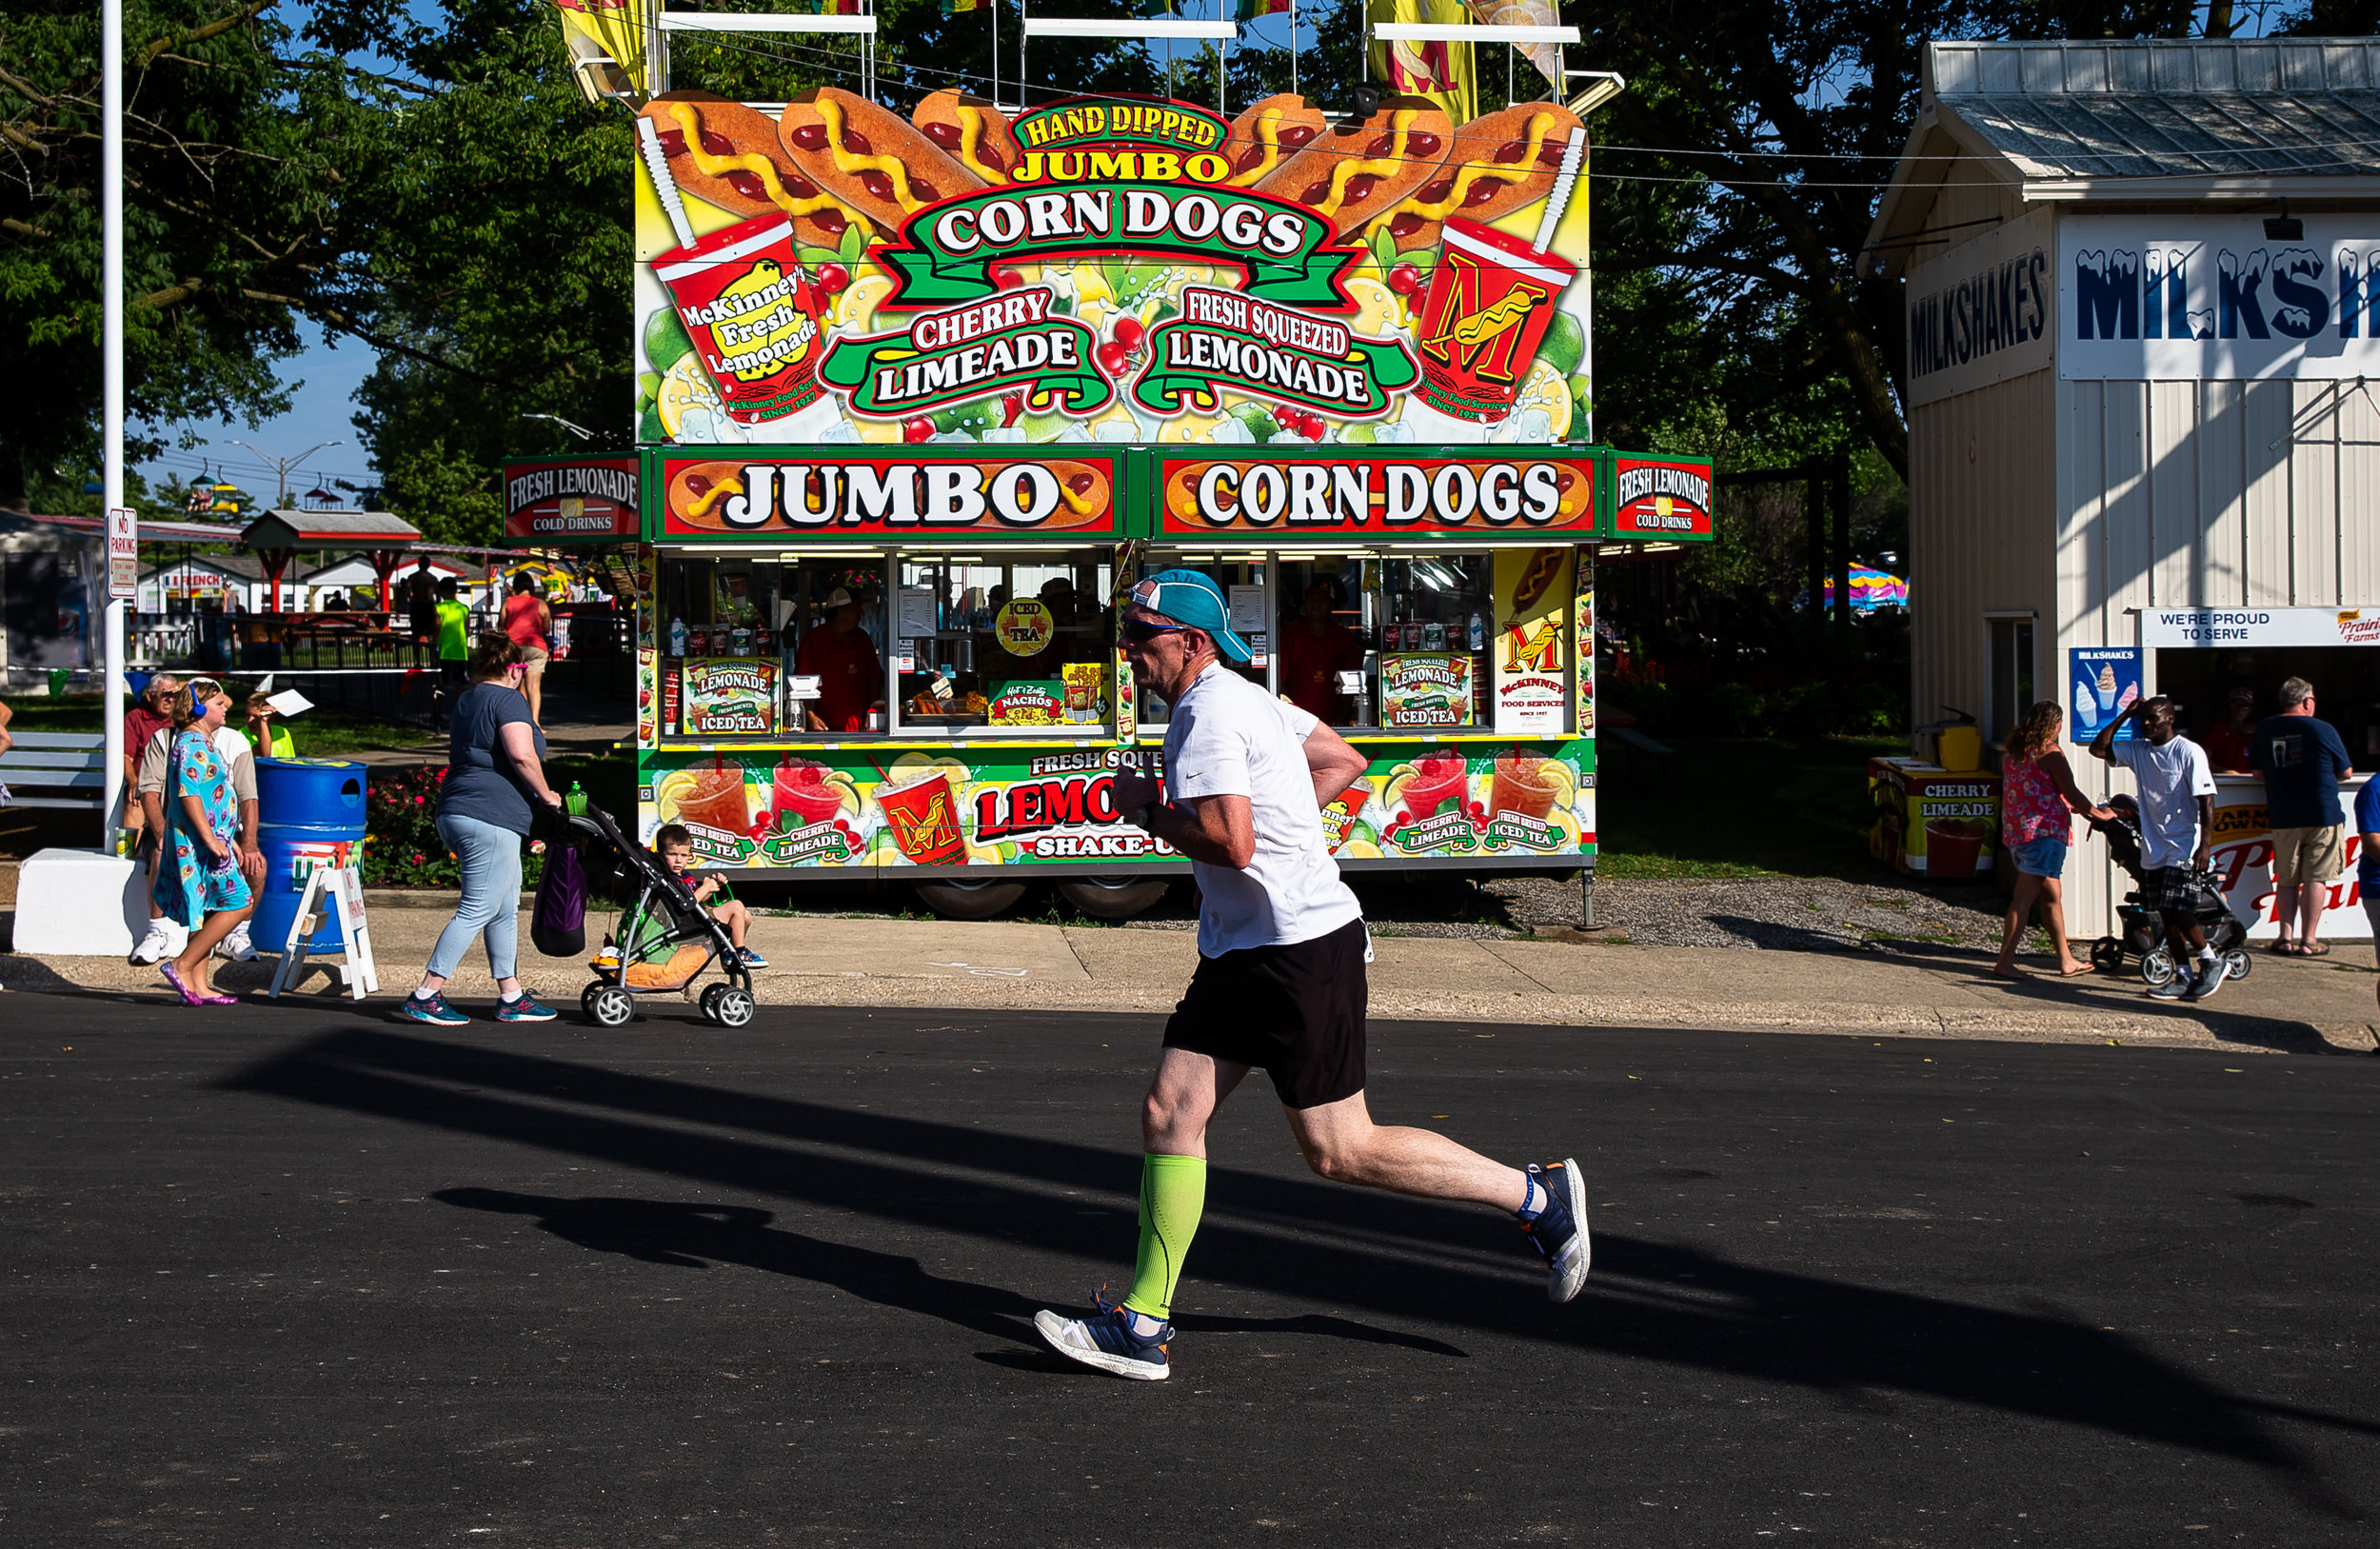 Runners in the Illinois State Fair Parade Run pass by the corn dog stand on Main Street as they near the finish line prior to the Illinois State Fair Twilight Parade, Thursday, Aug. 9, 2018, in Springfield, Ill. [Justin L. Fowler/The State Journal-Register]